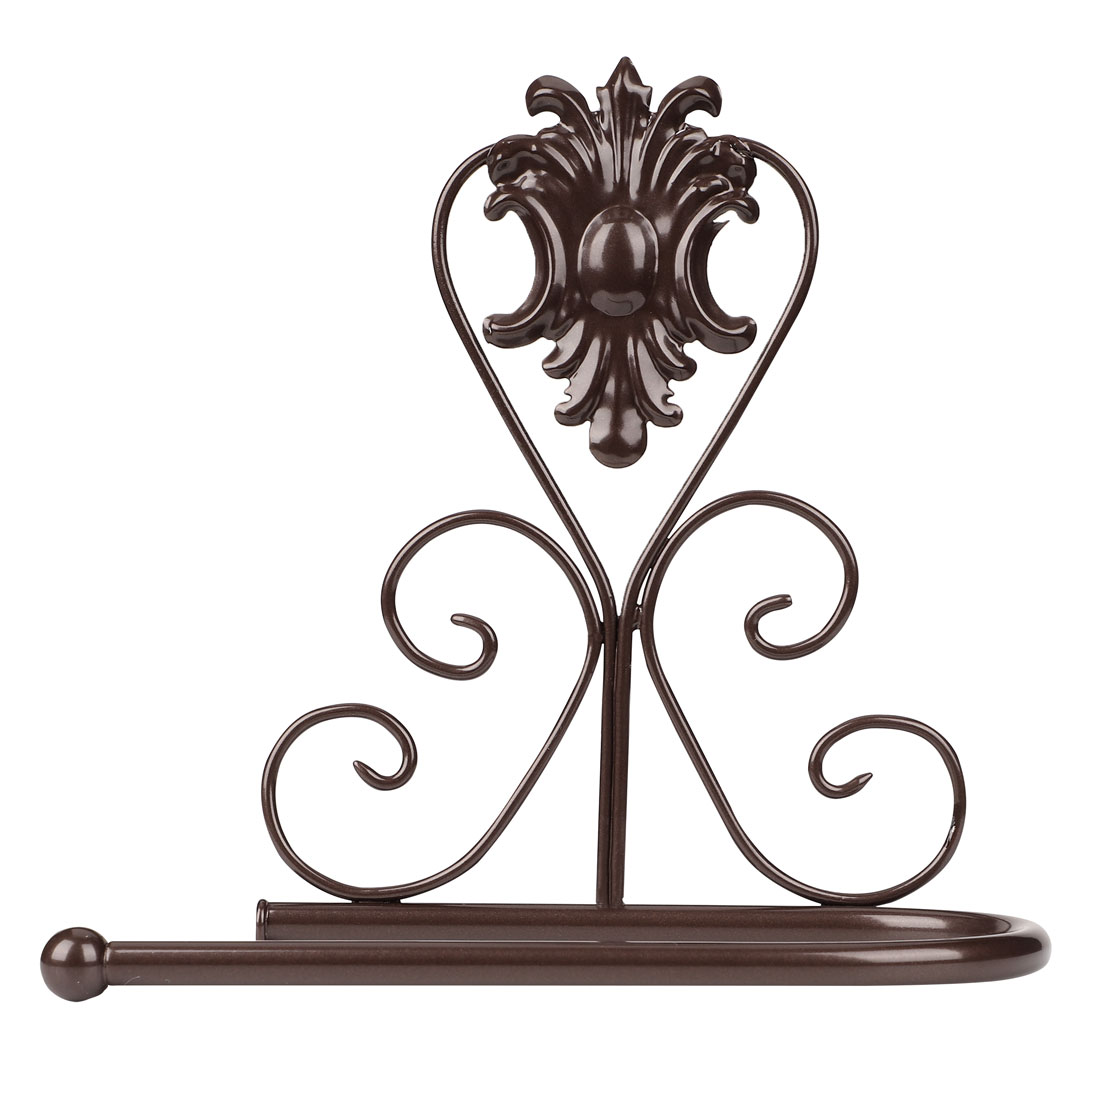 Toilet Paper Roll Holder Bathroom Wall Rack for Bathroom and Kitchen Bronze